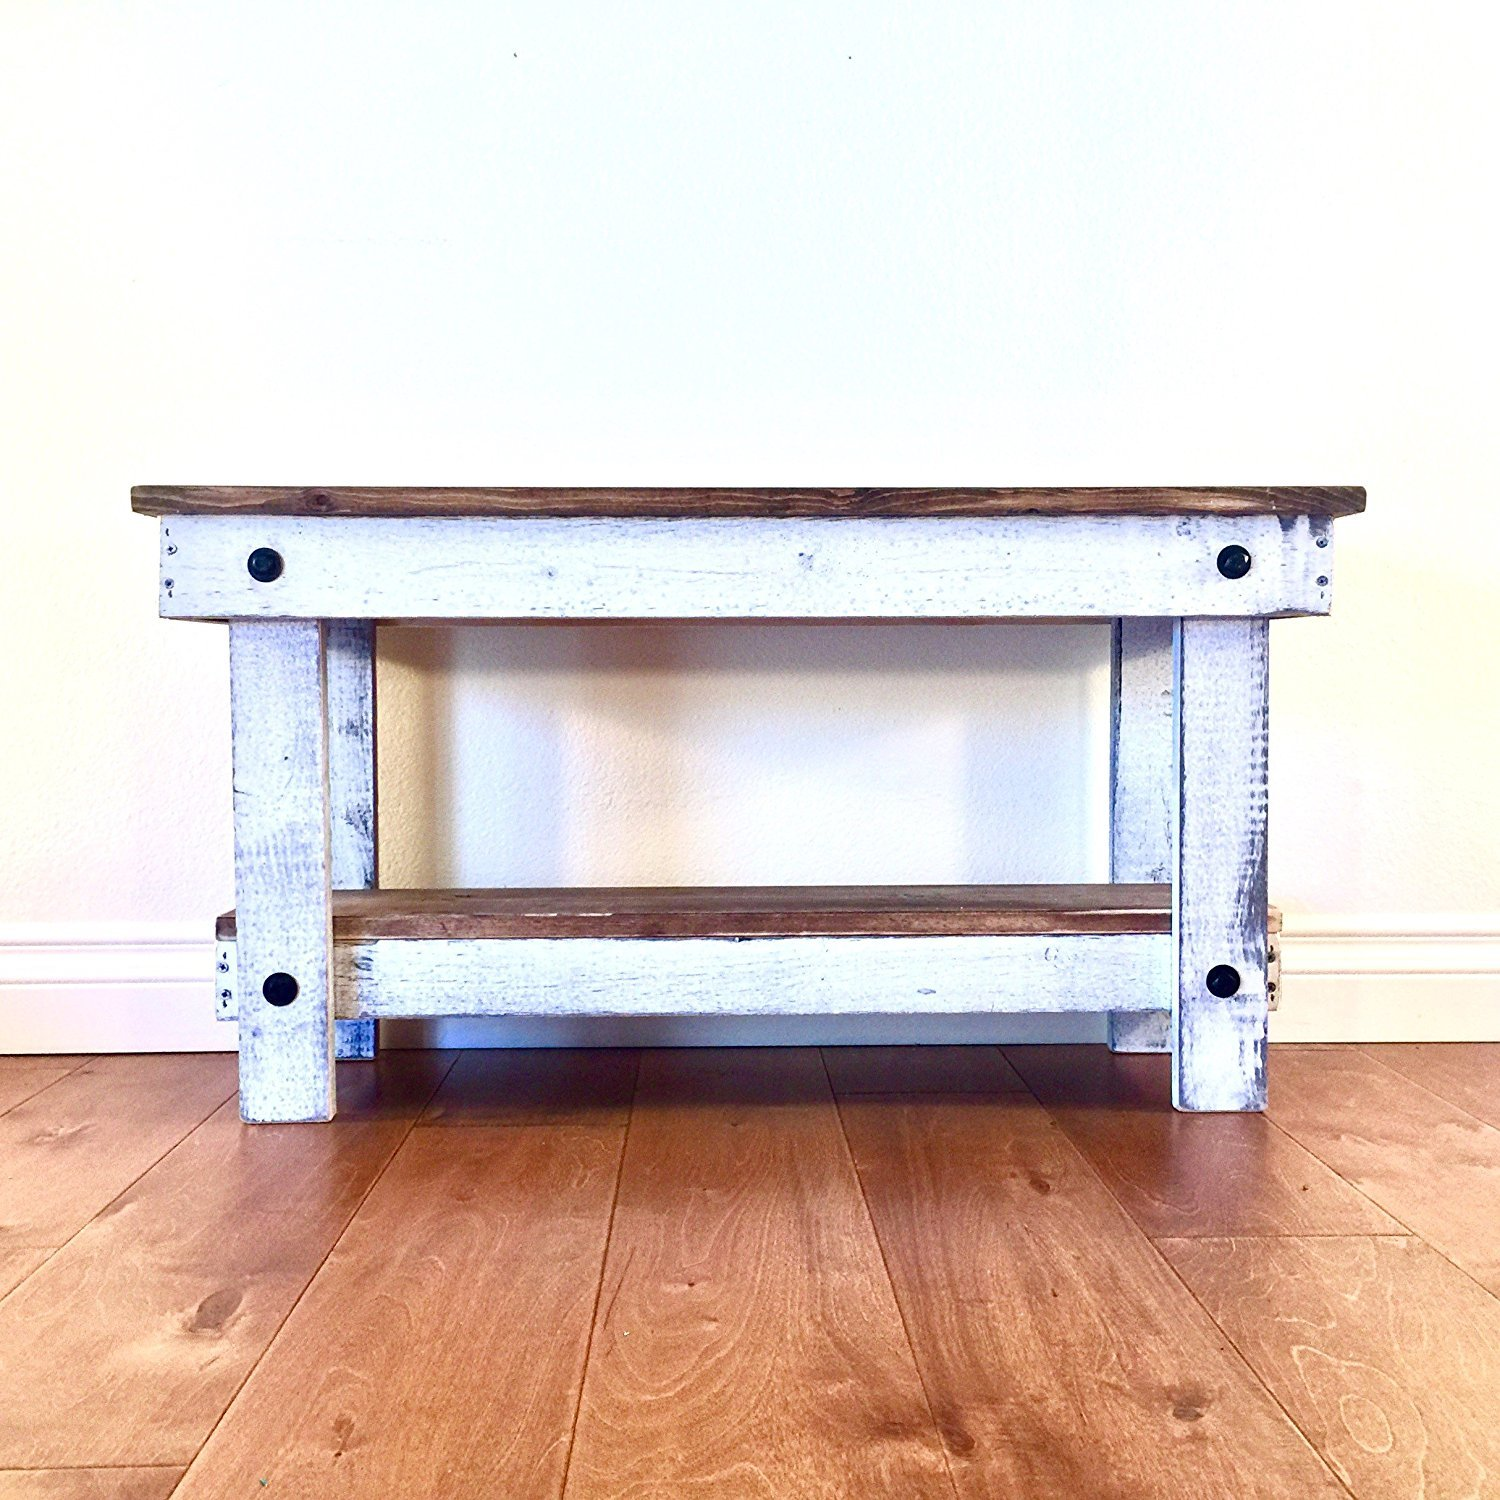 Rustic Handcrafted Reclaimed Bench - Easy Self Assembly - Natural & White 36x12x18